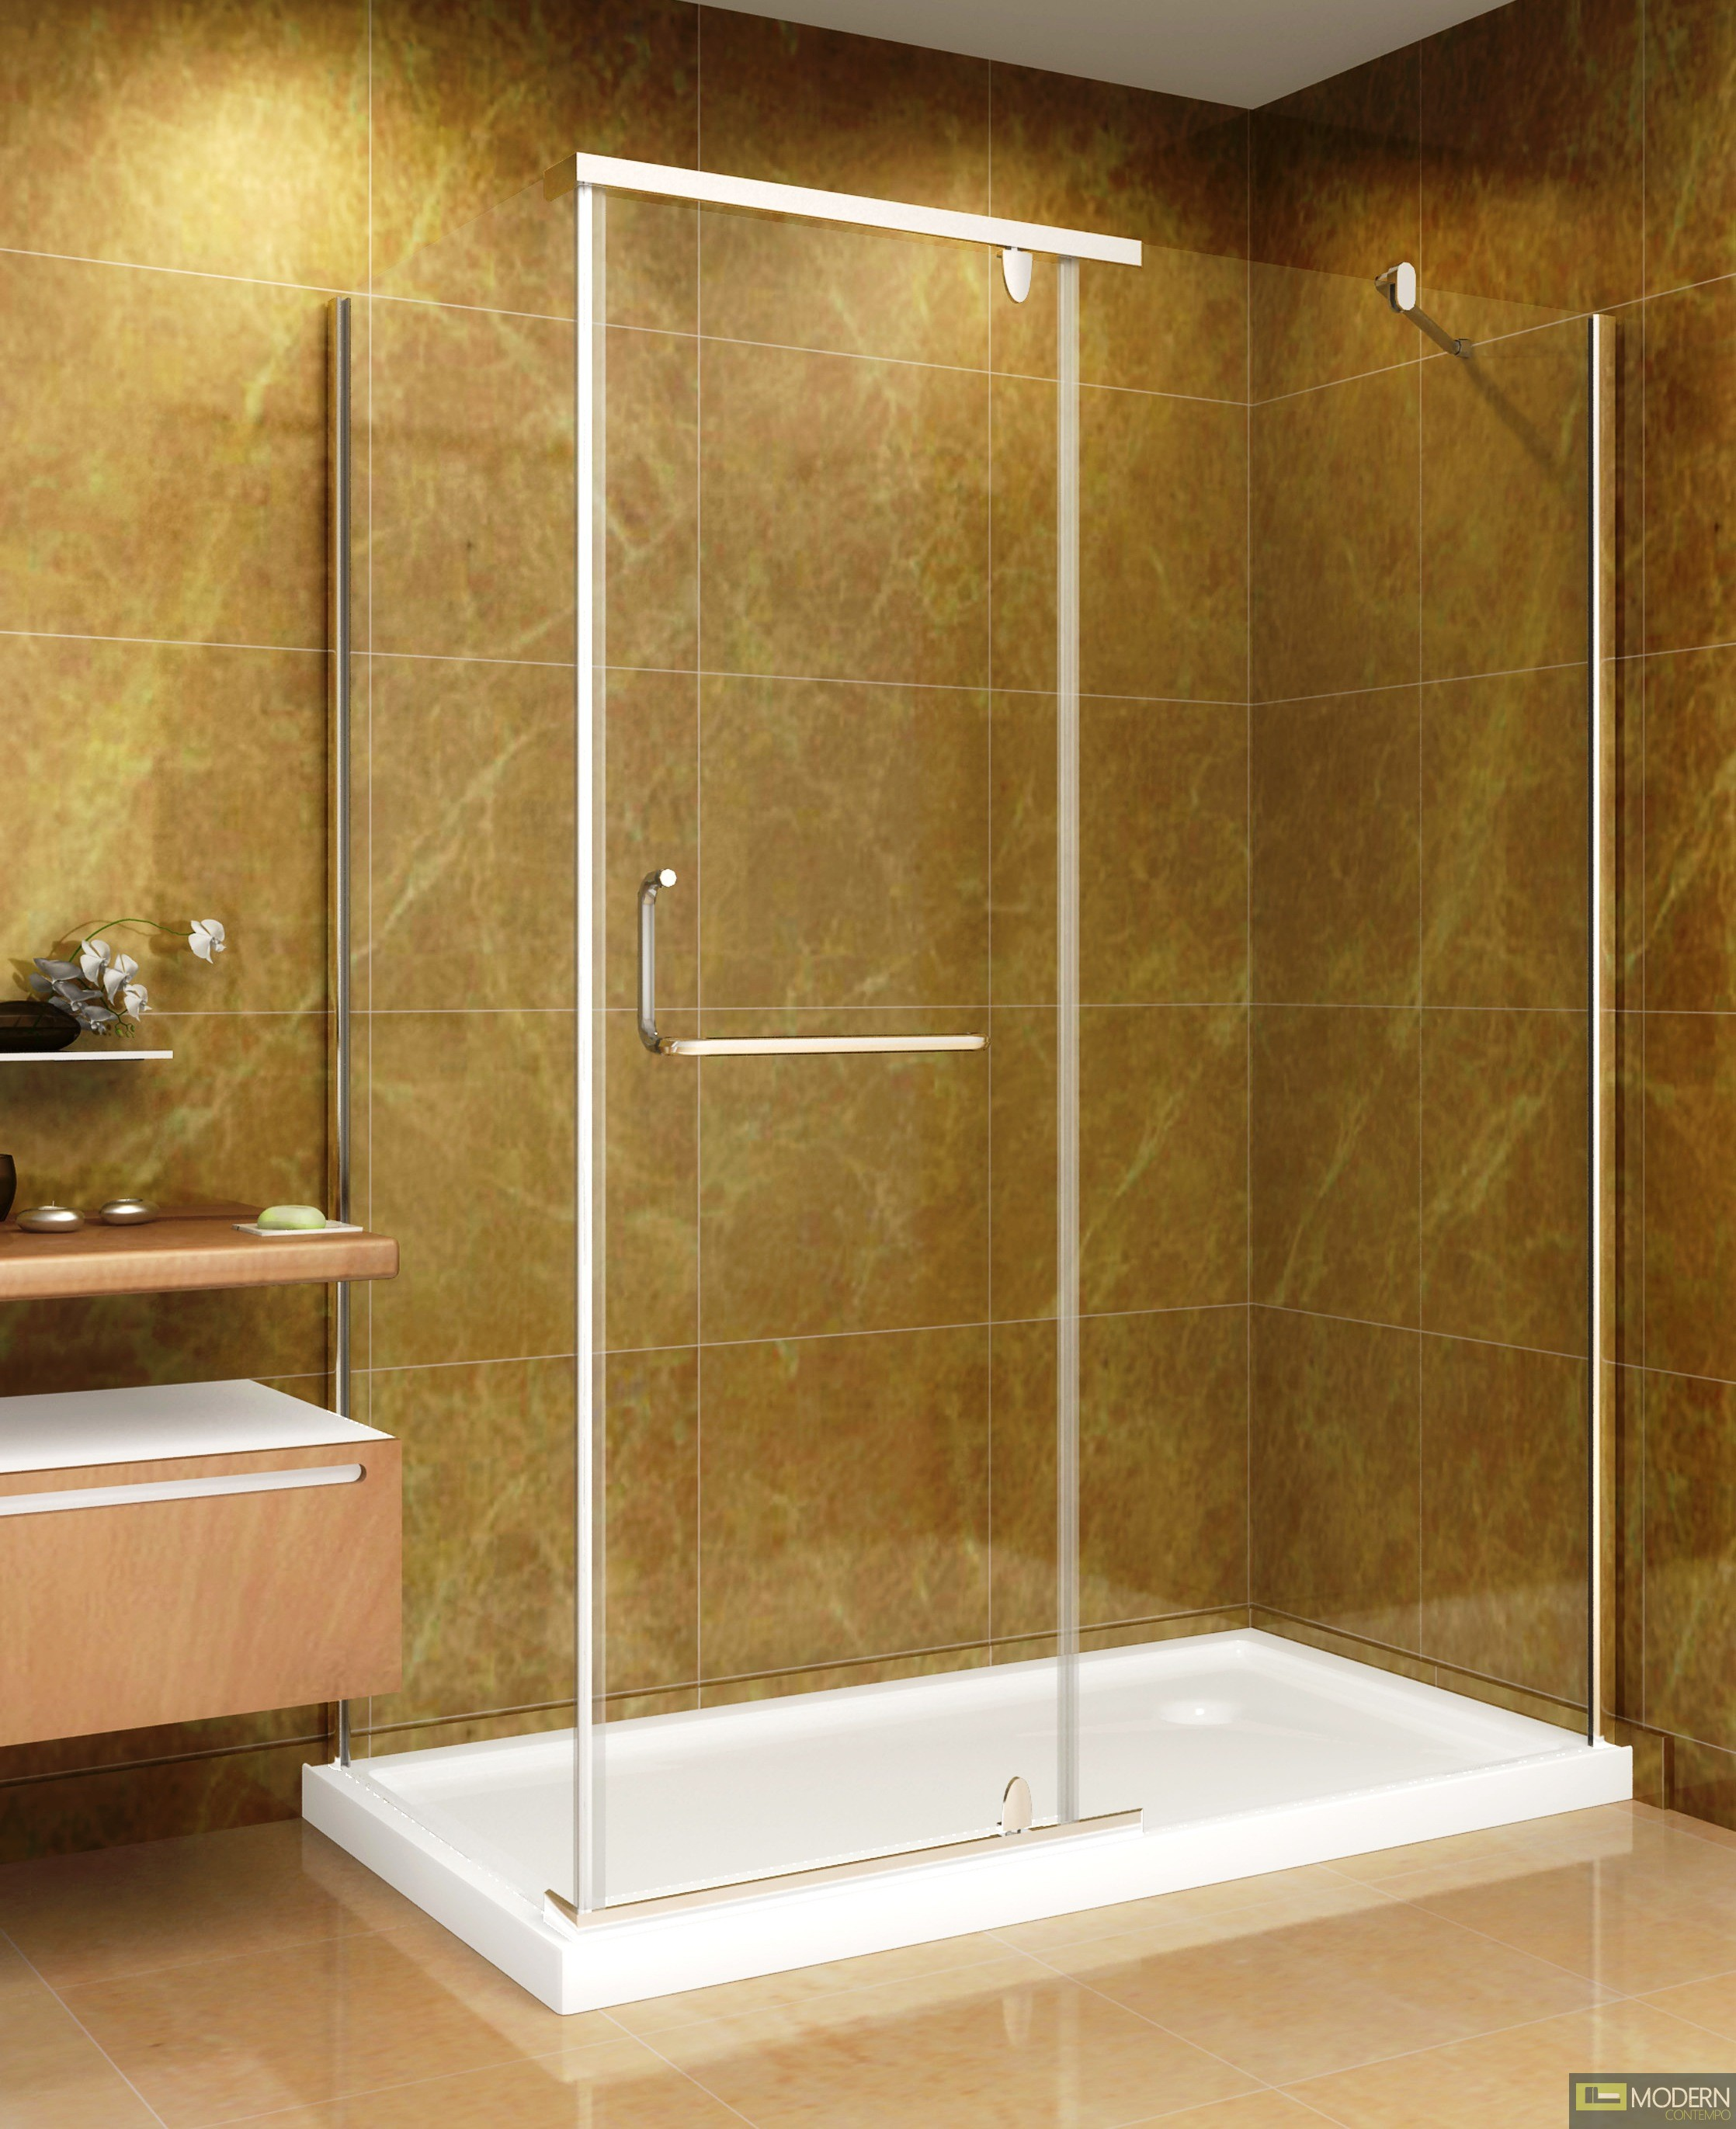 60 x 35 shower enclosure with acrylic shower base in for Glass or acrylic